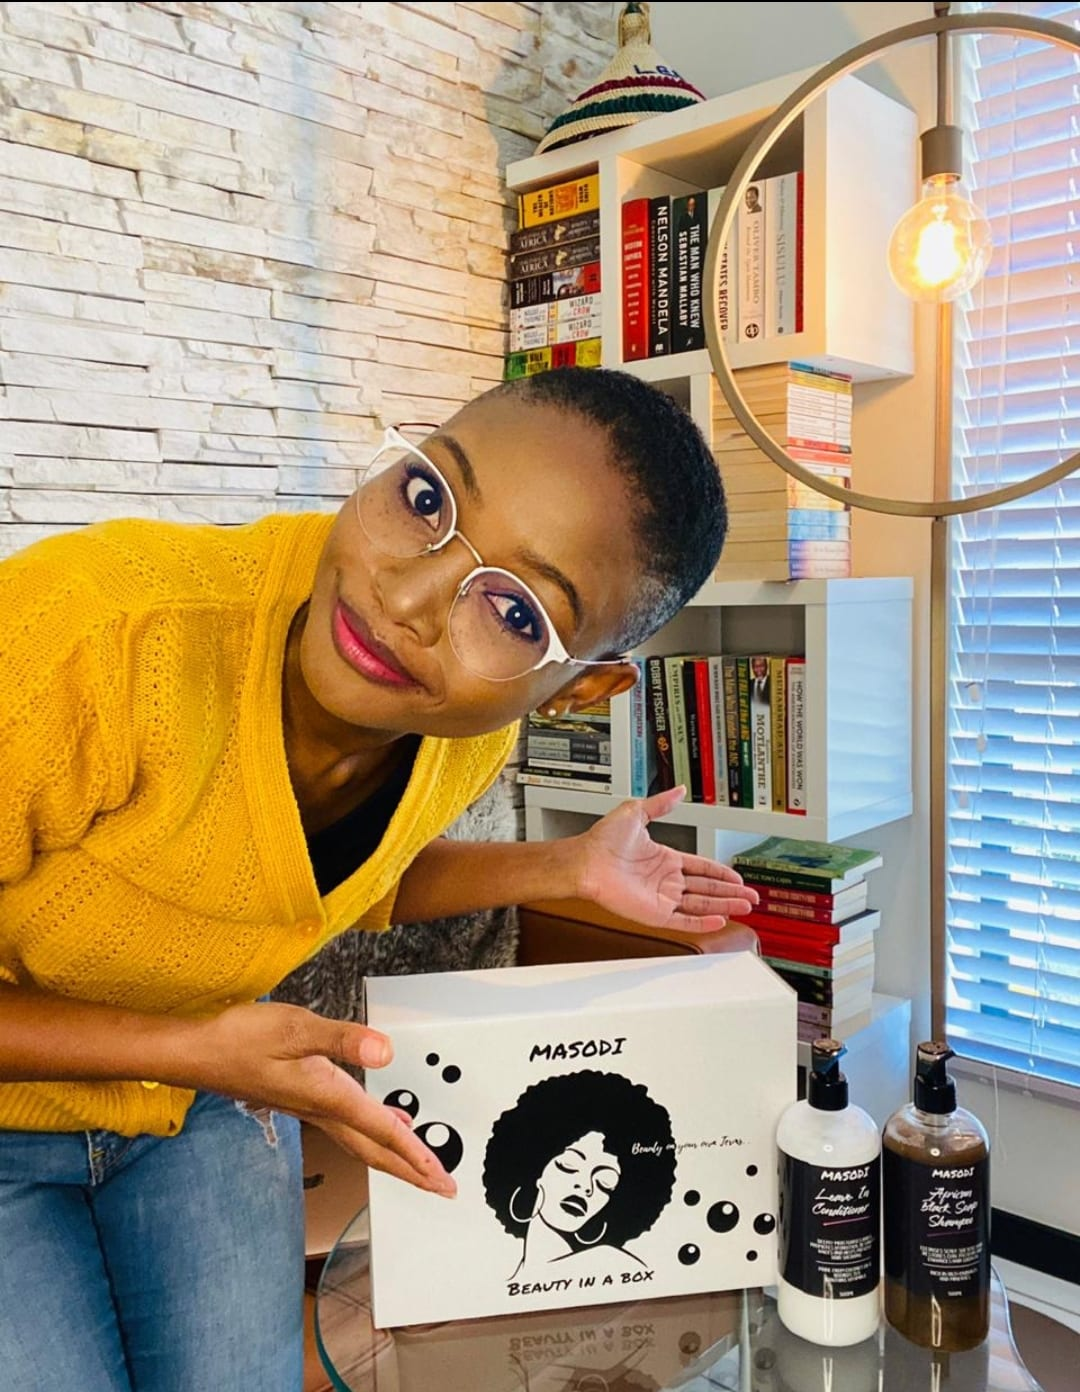 Liz Letsoalo (28) was inspired by her equal passions for politics and entrepreneurship to create Masodi Organics. Photo: Supplied